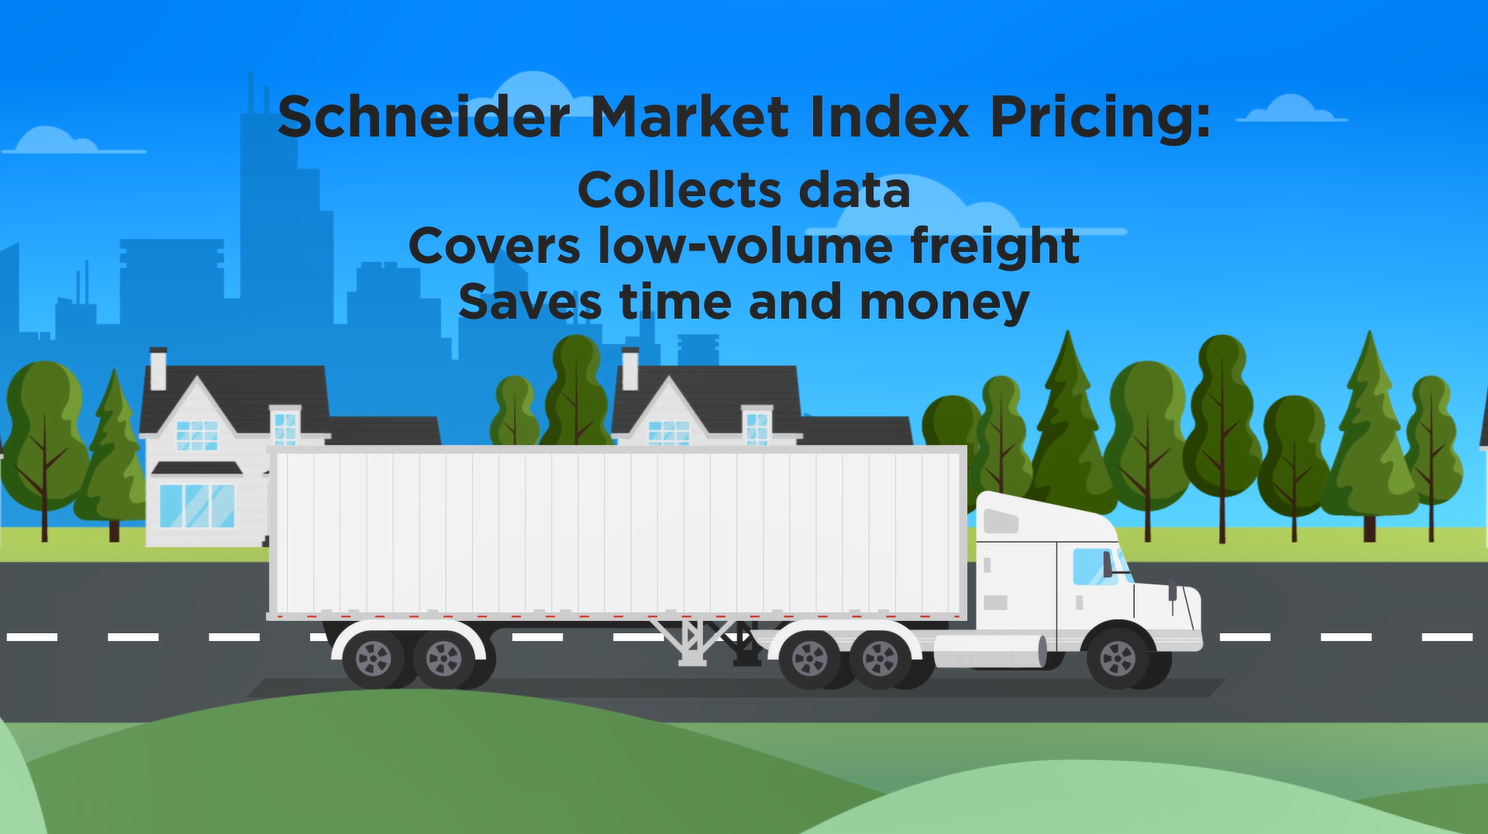 freight quotes for inconsistent shipments with Market Index Pricing